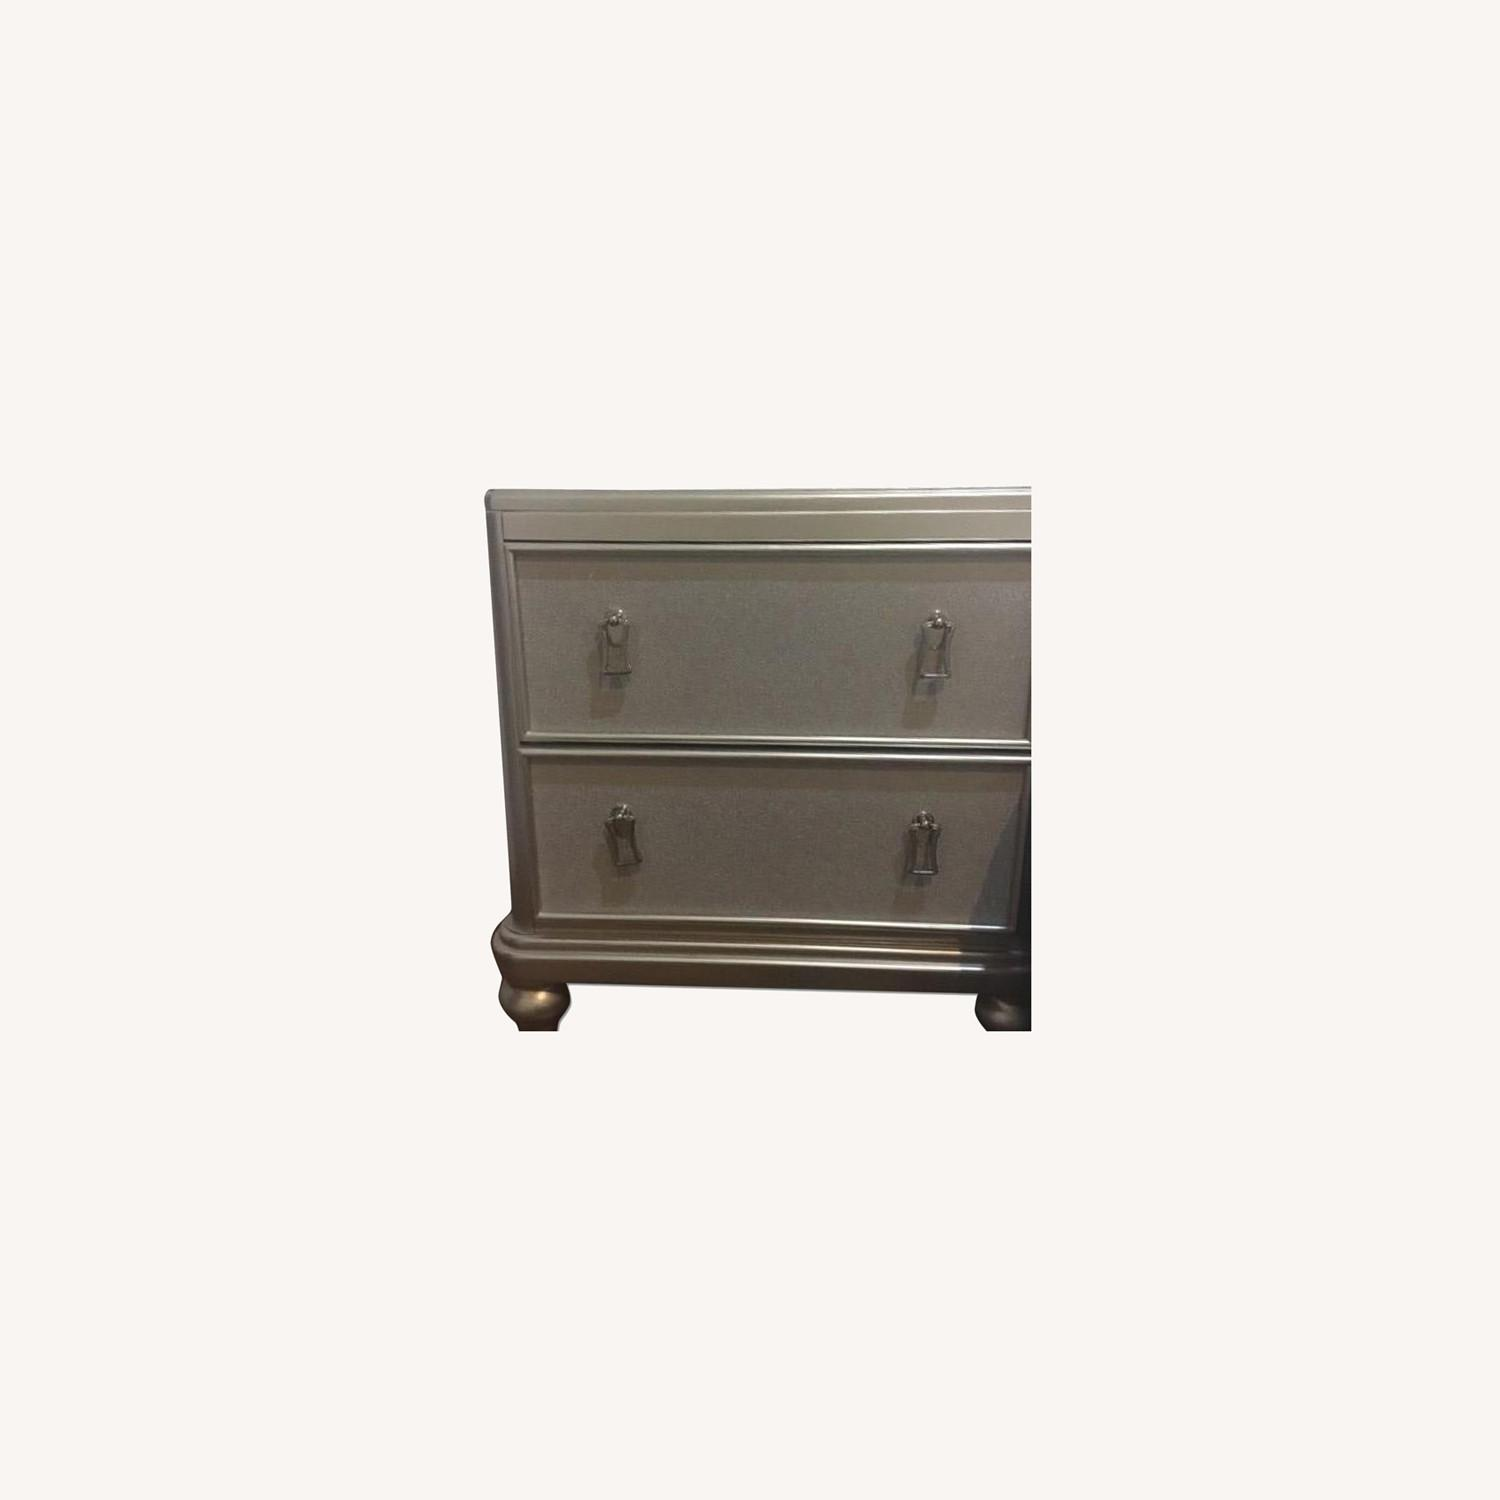 Bob's Discount Furniture Silver Nightstand - image-0